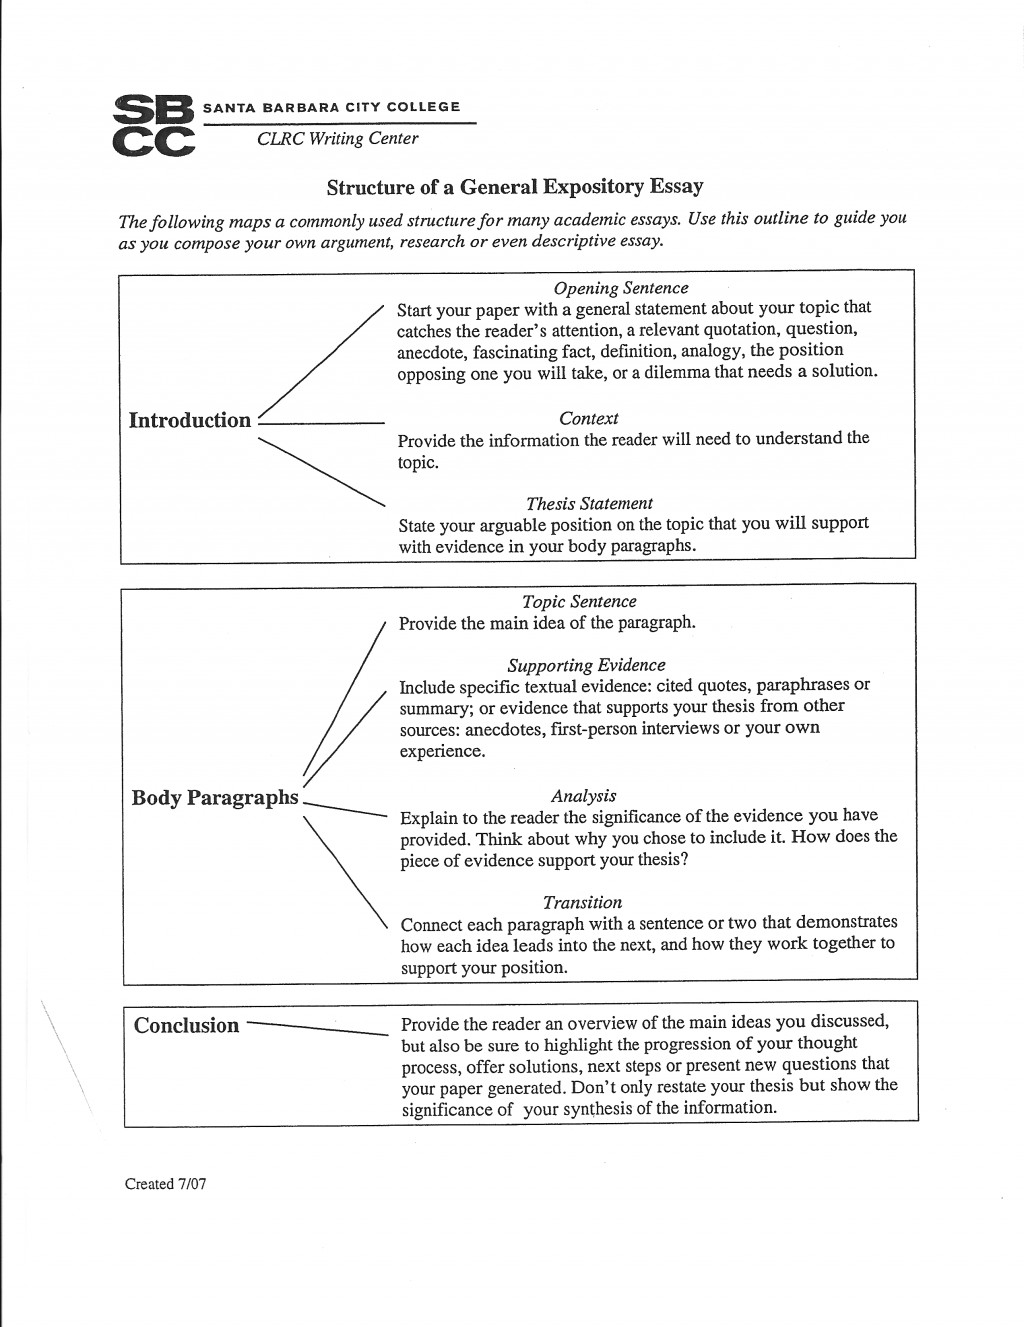 005 Essay Example An Outline For Informative Should Essays On Malaria To What Extent Structure Ielts Writing Thesis Exa Examples Remarkable After Creating A Student Brainly The Include Large